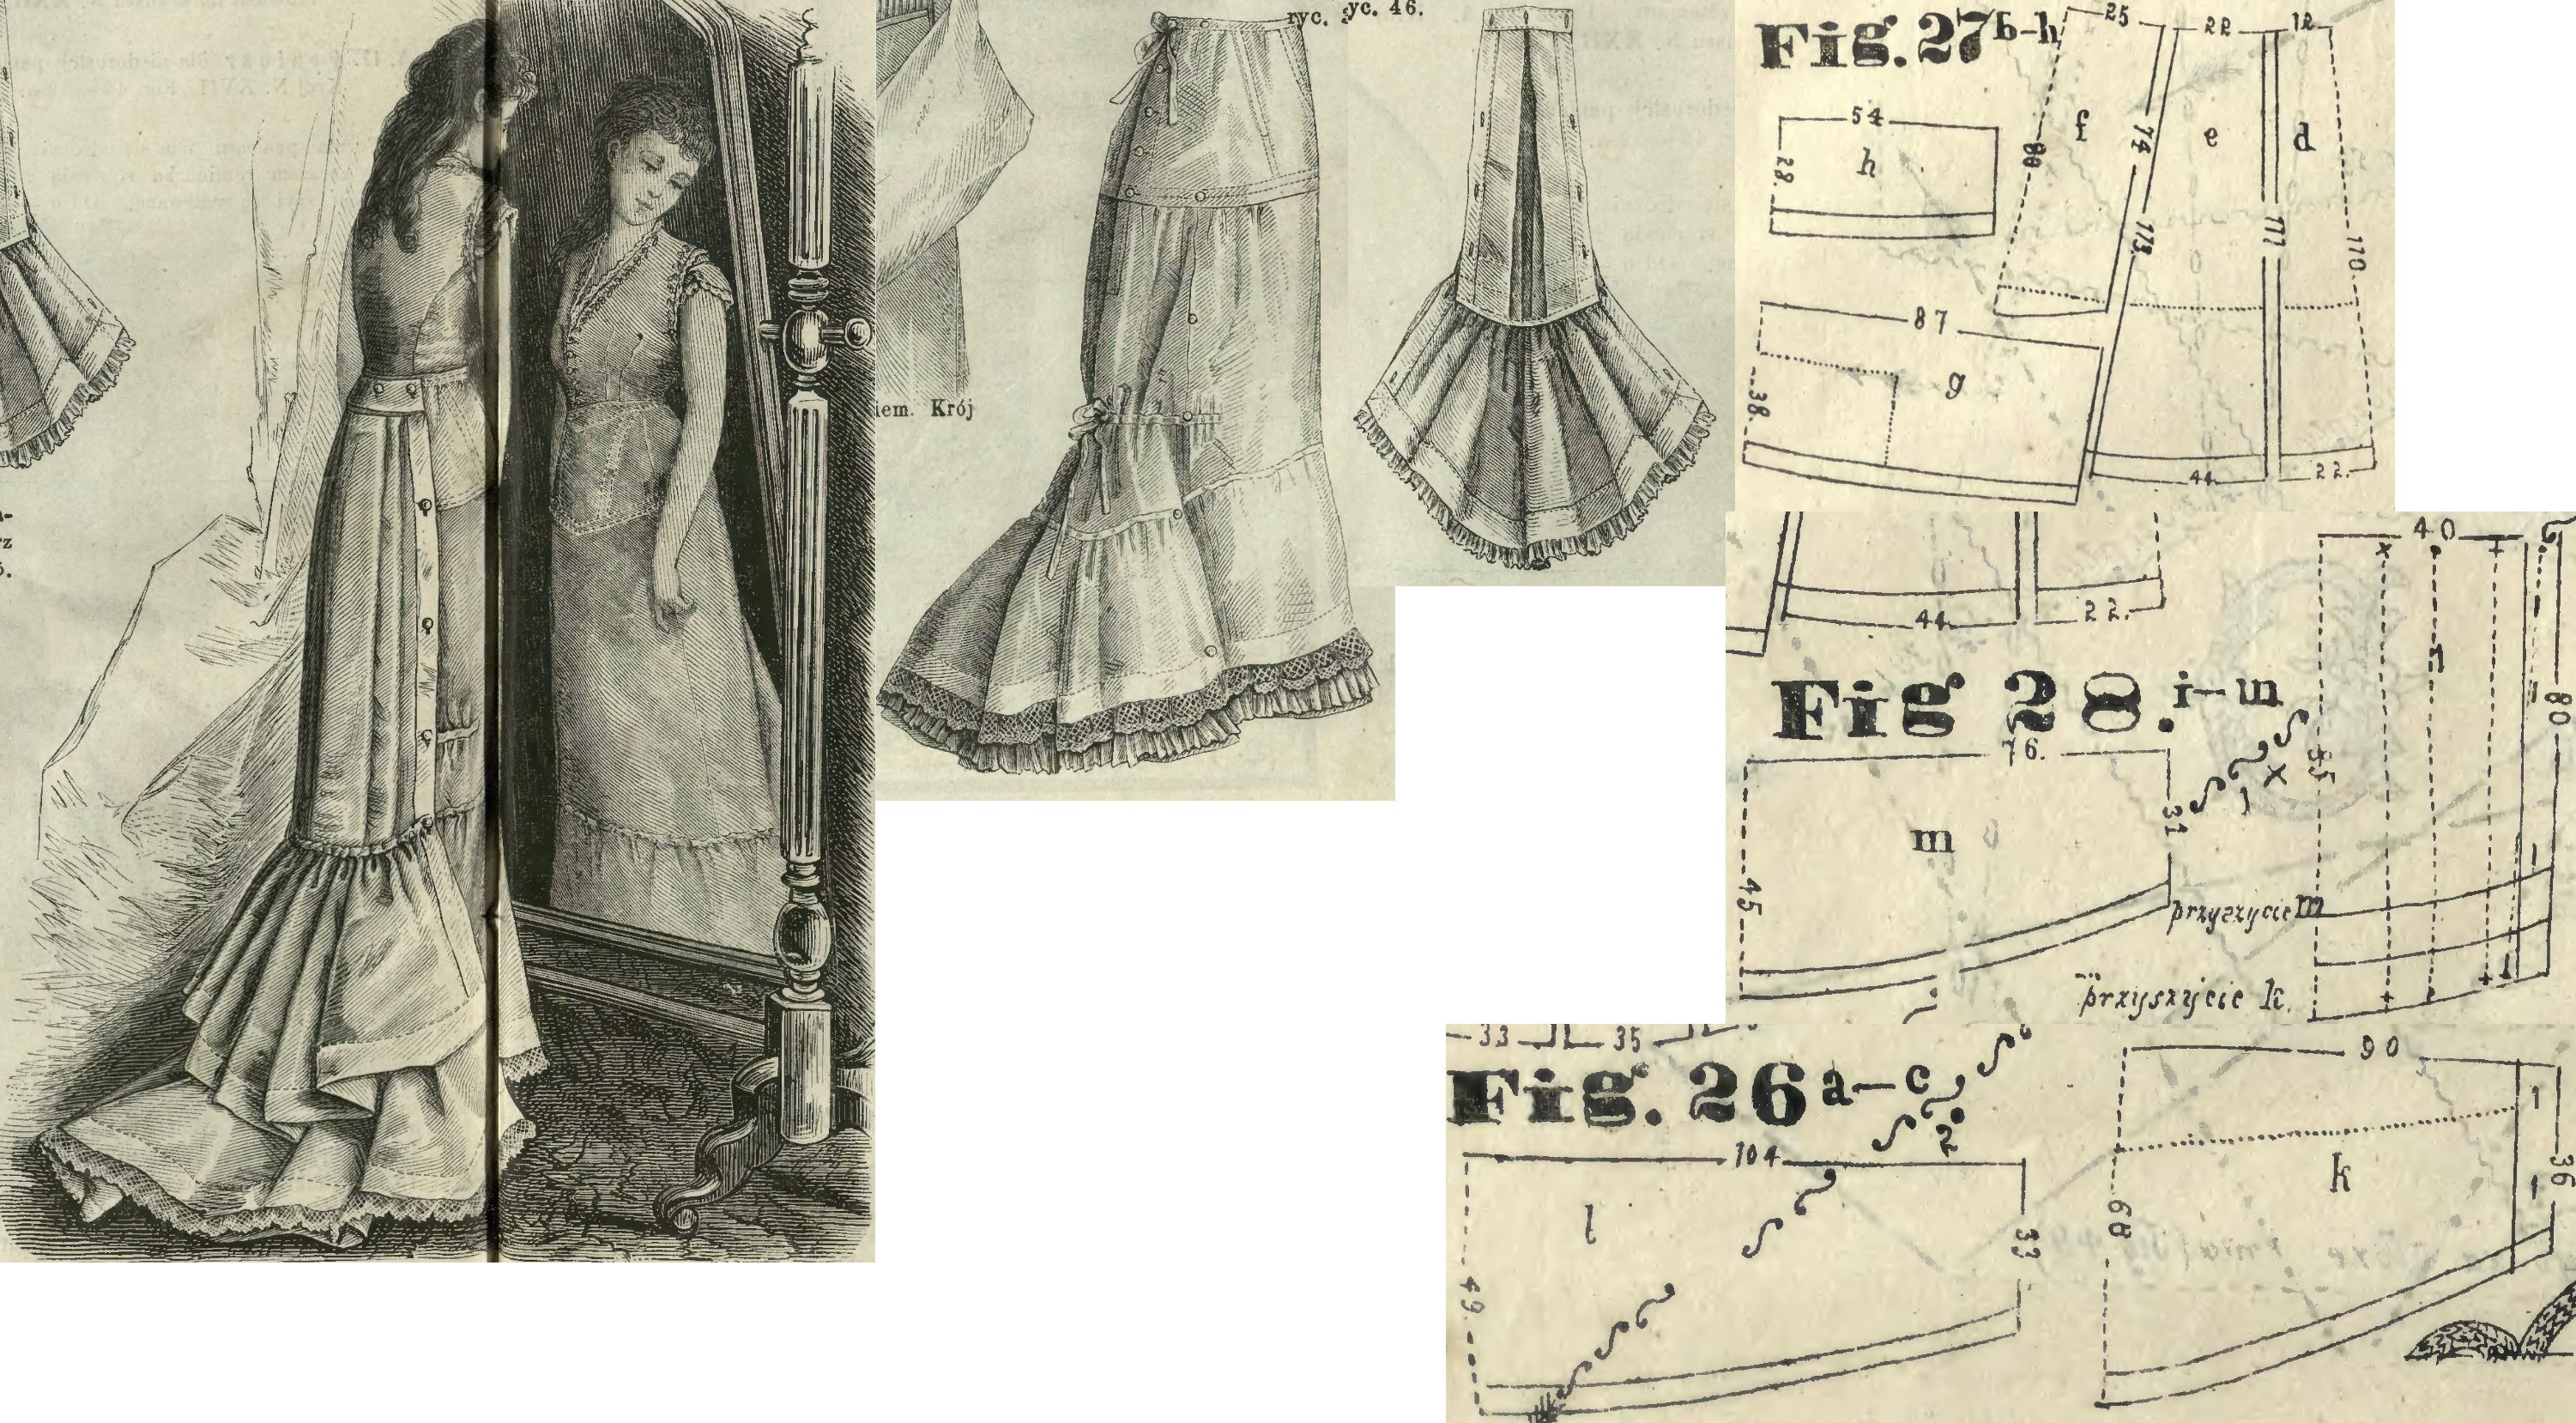 Tygodnik Mód 1877.: Demi-train petticoat with detachable bustle; Fig. 27. pattern of the petticoat (d front part in half, e side gore, f short back gore in half, g supplementing back ruffle in half, h second row of ruffle in half, dotted lines mark where to set it on g), 28. detachable bustle's pattern (i bustle in half, k bottom ruffle in half, m top ruffle in half), 26. ruffle in half of the petticoat (set it at the dotted lines on d-f)